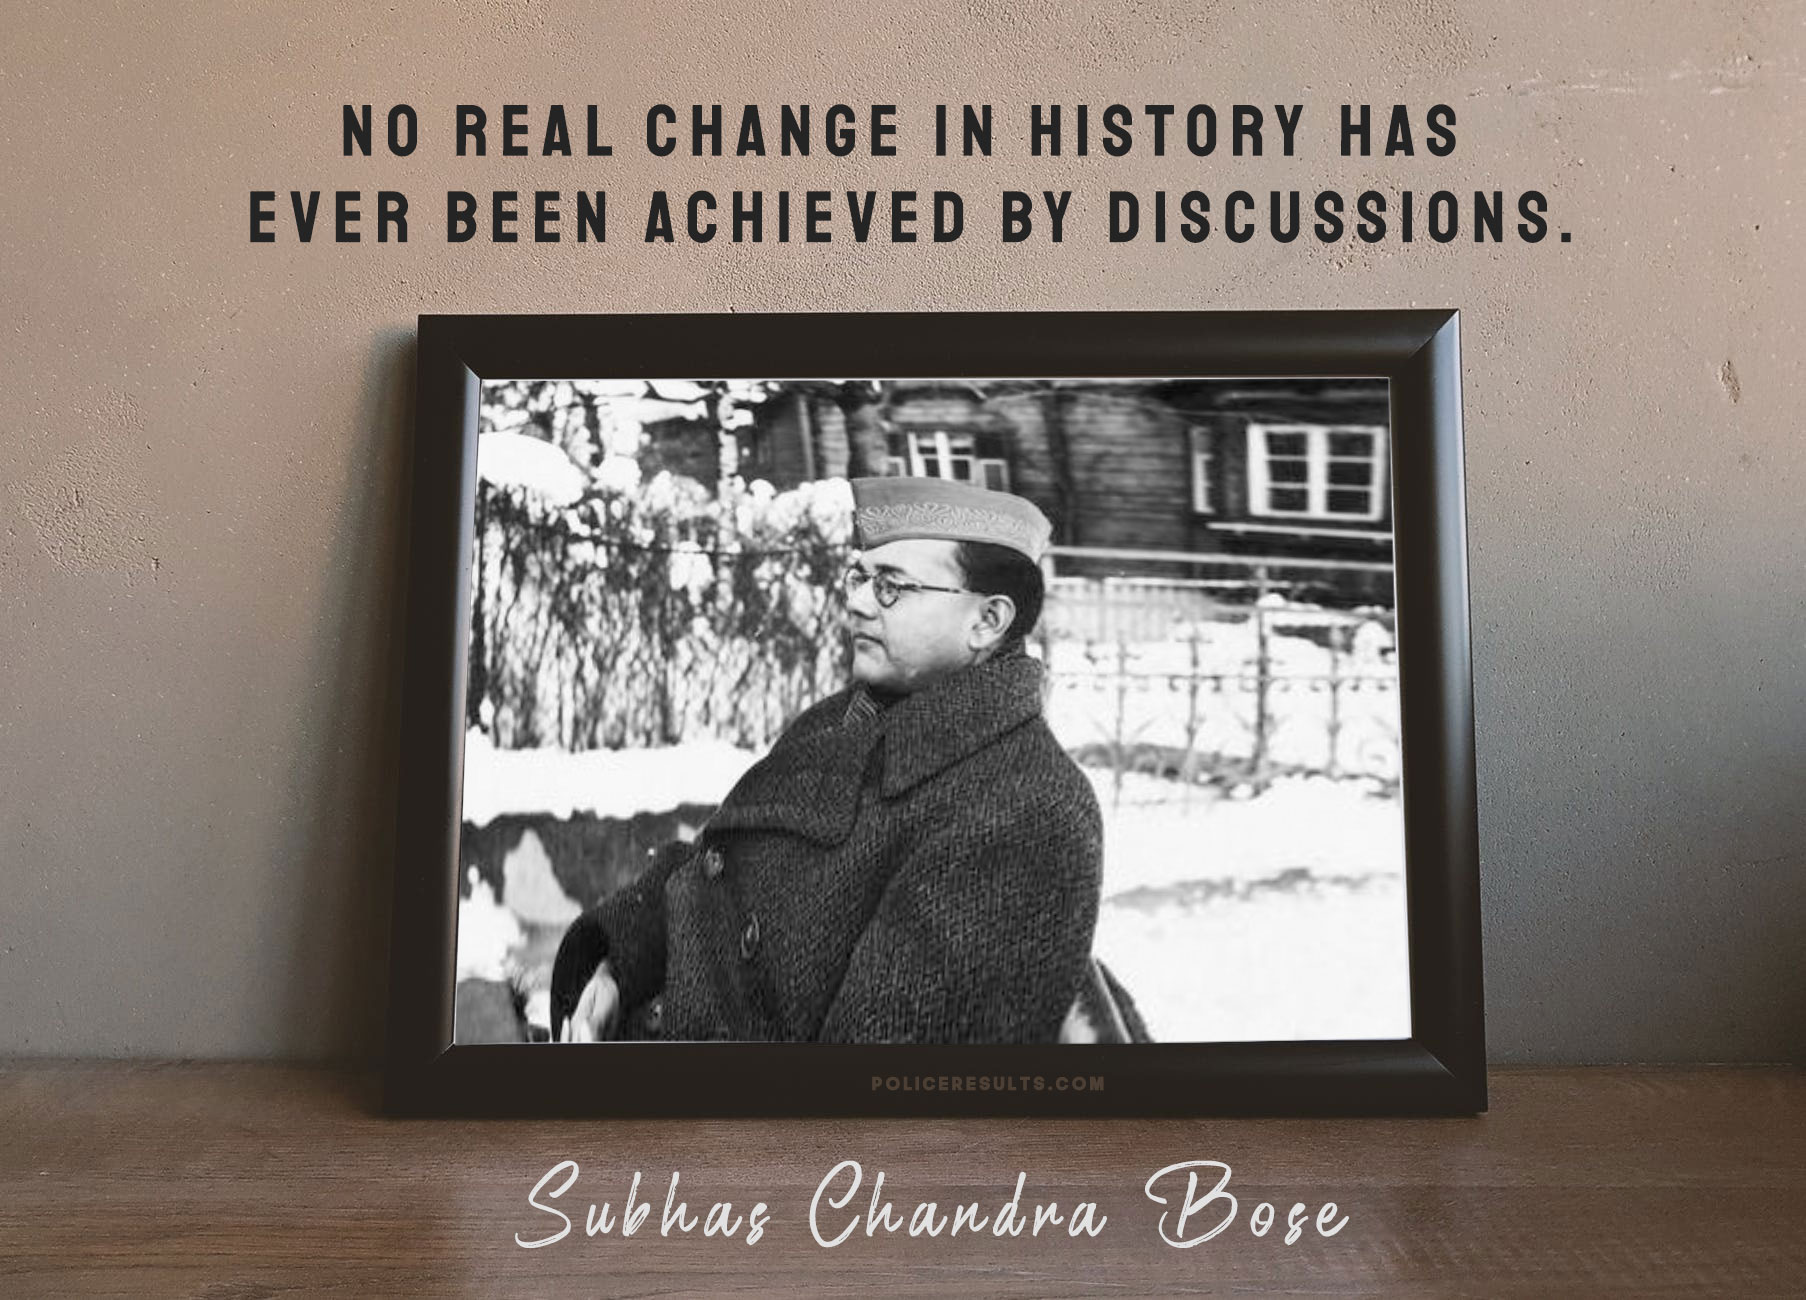 No real change in history has ever been achieved by discussions.